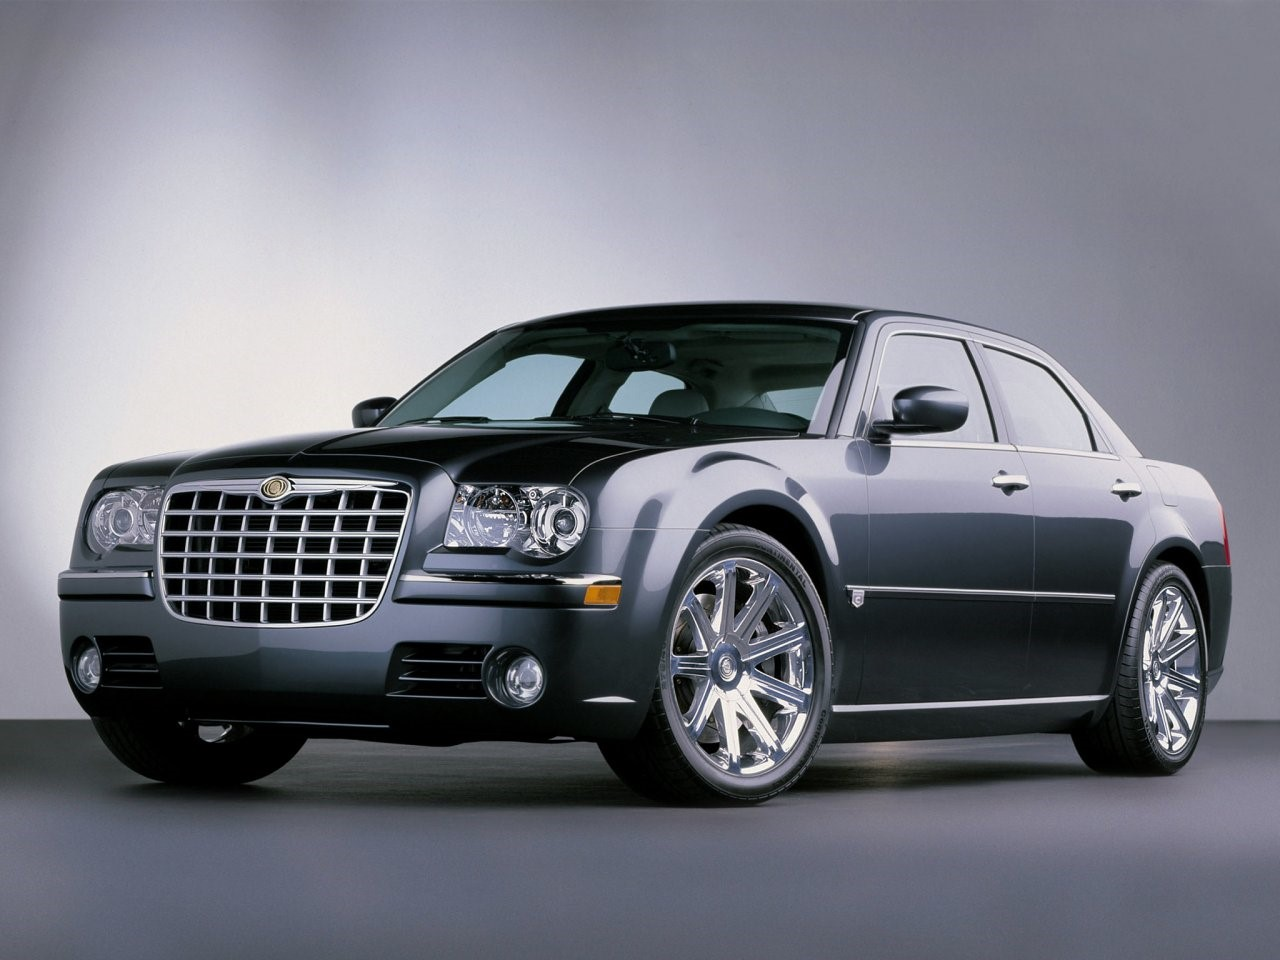 2003 Chrysler 300C concept 2